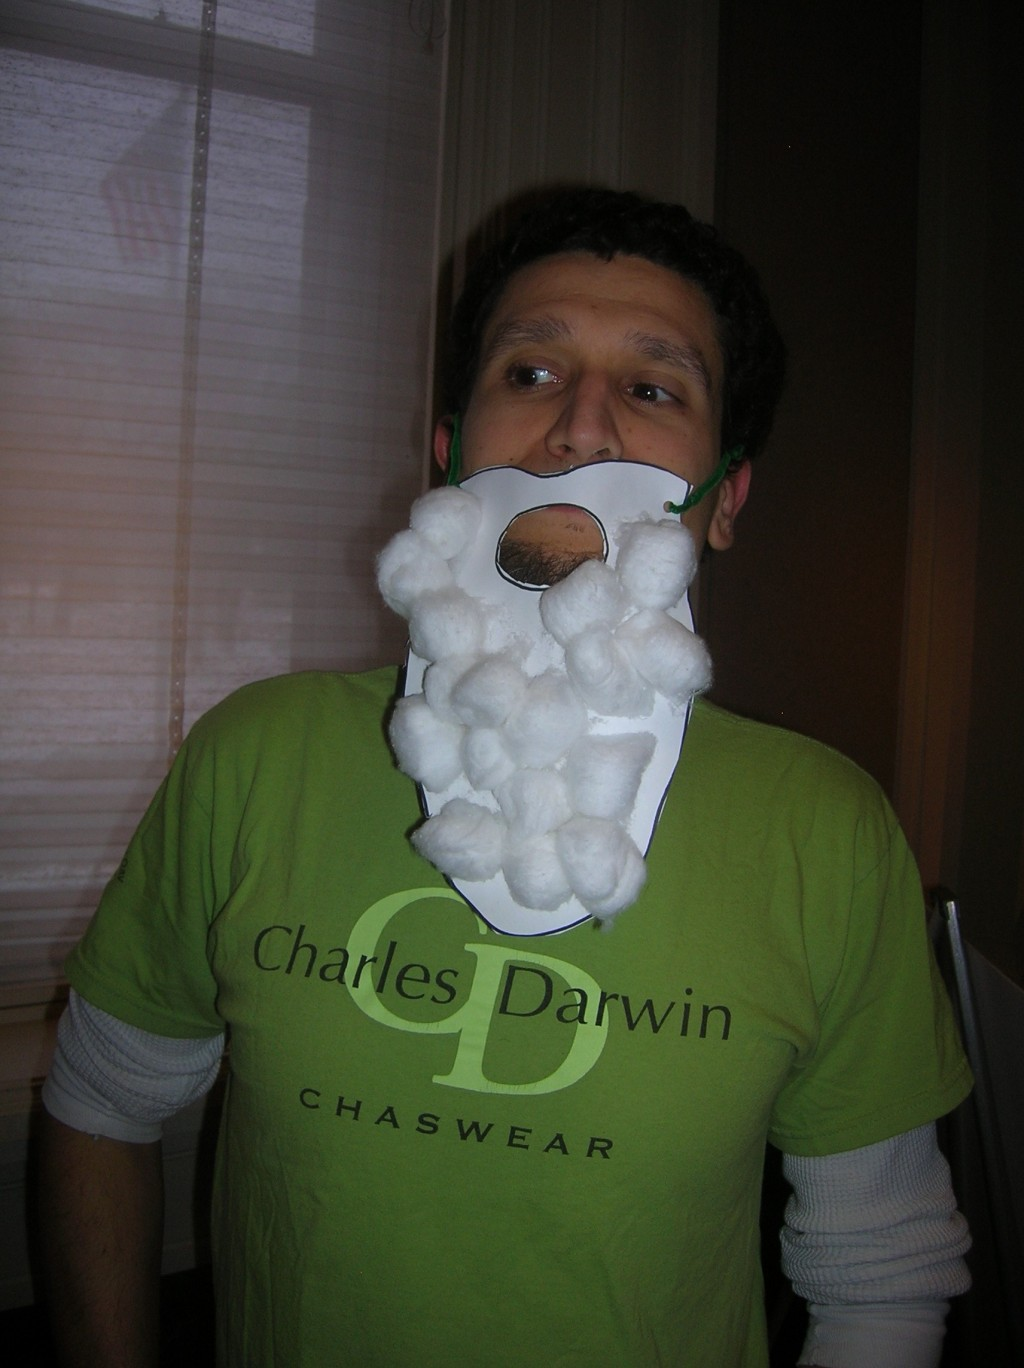 Chris Noto as Darwin.